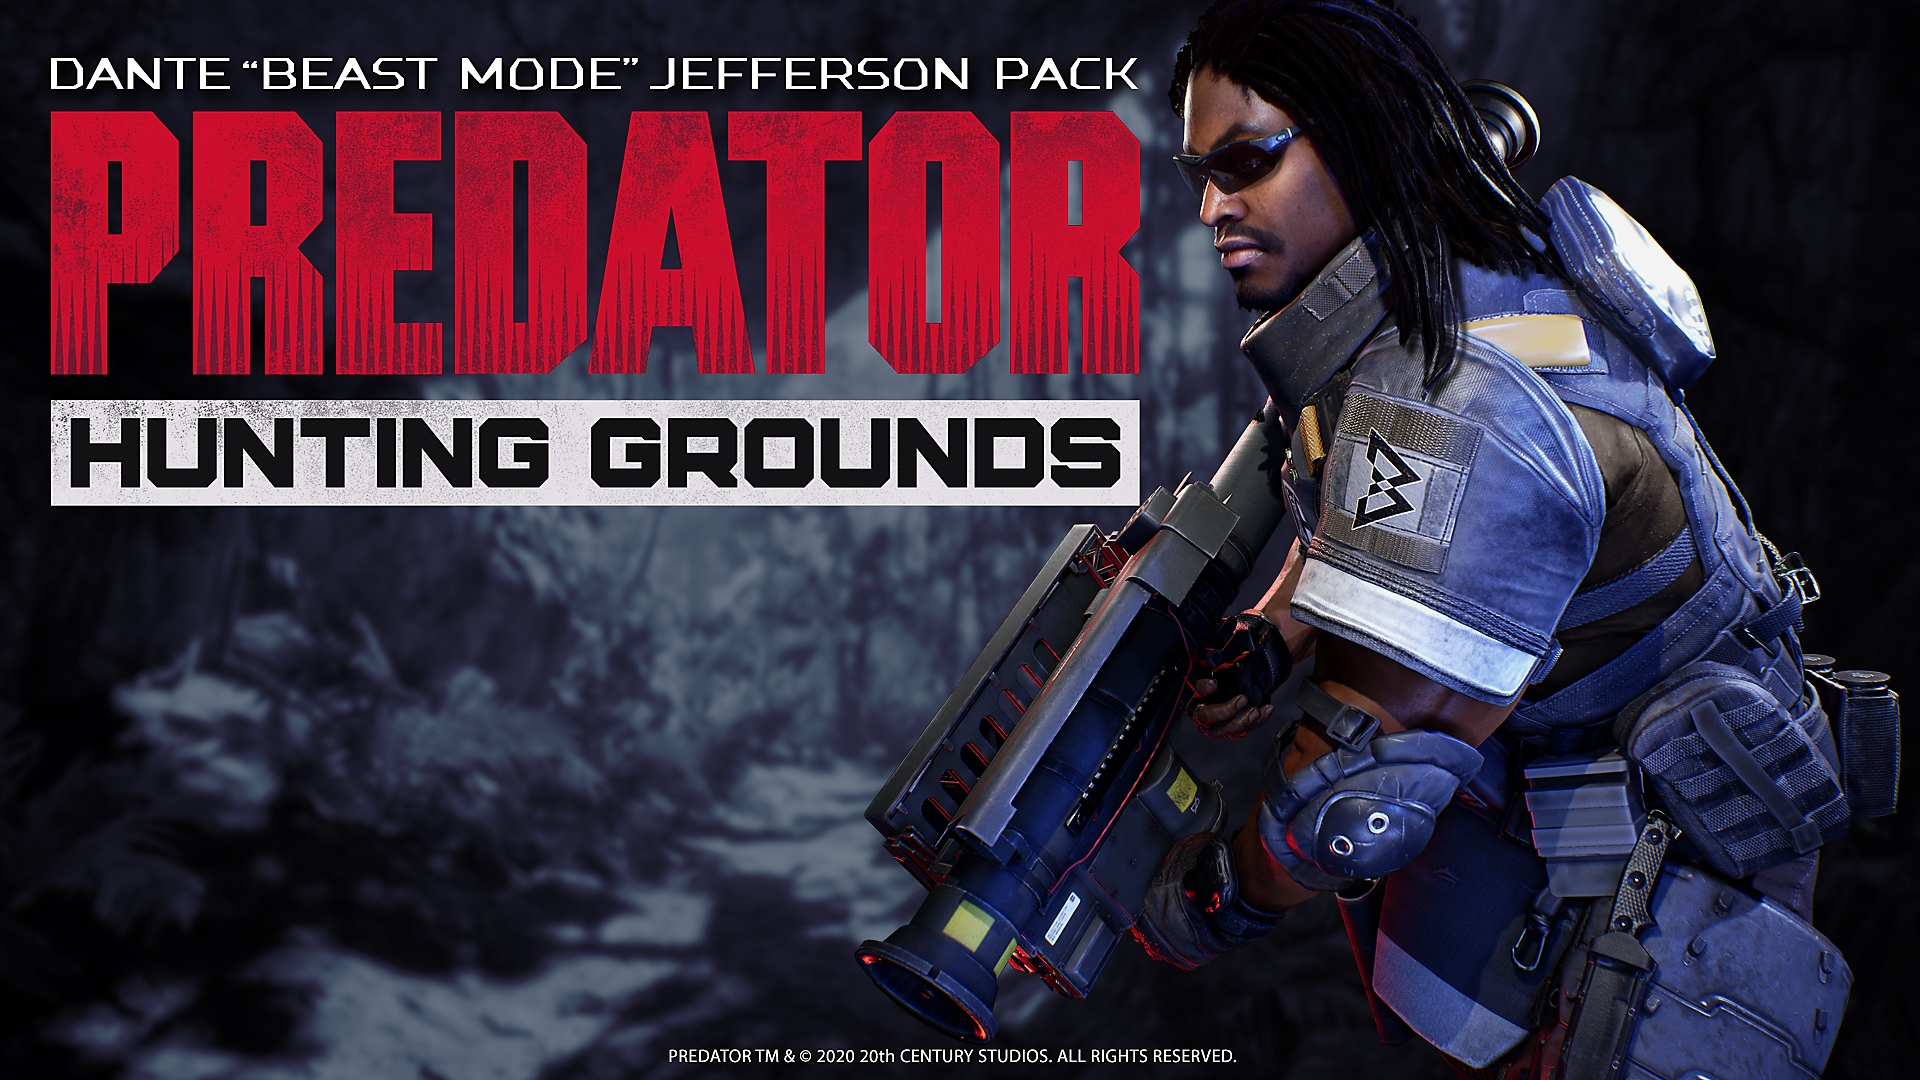 predator hunting grounds dante beast mode jefferson pack dlc